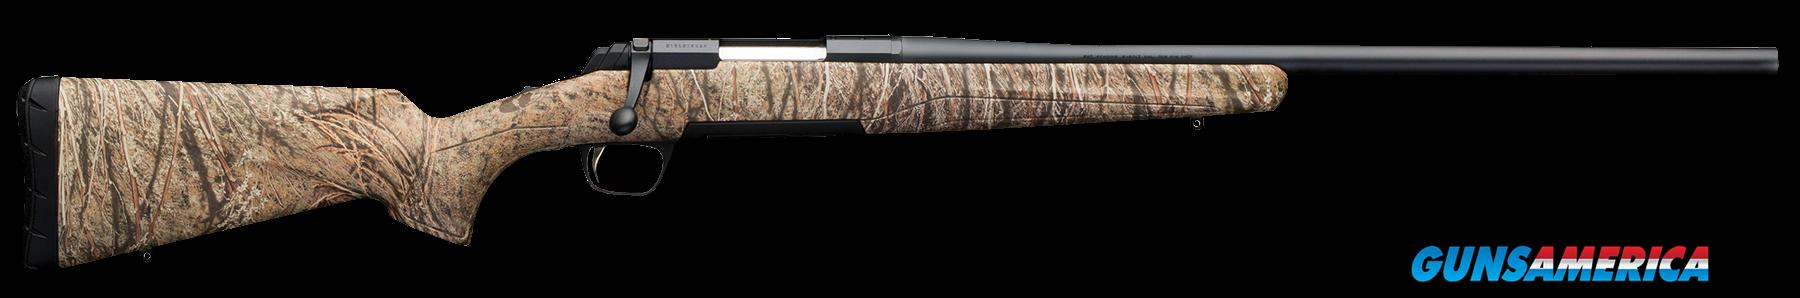 NIB BROWNING X-BOLT 22-250 VARMINT MOSSY OAK BRUSH CAMO!!! LAYAWAY AVAILABLE GIVE US A CALL TODAY FOR DETAILS!!!  Guns > Rifles > Browning Rifles > Bolt Action > Hunting > Blue